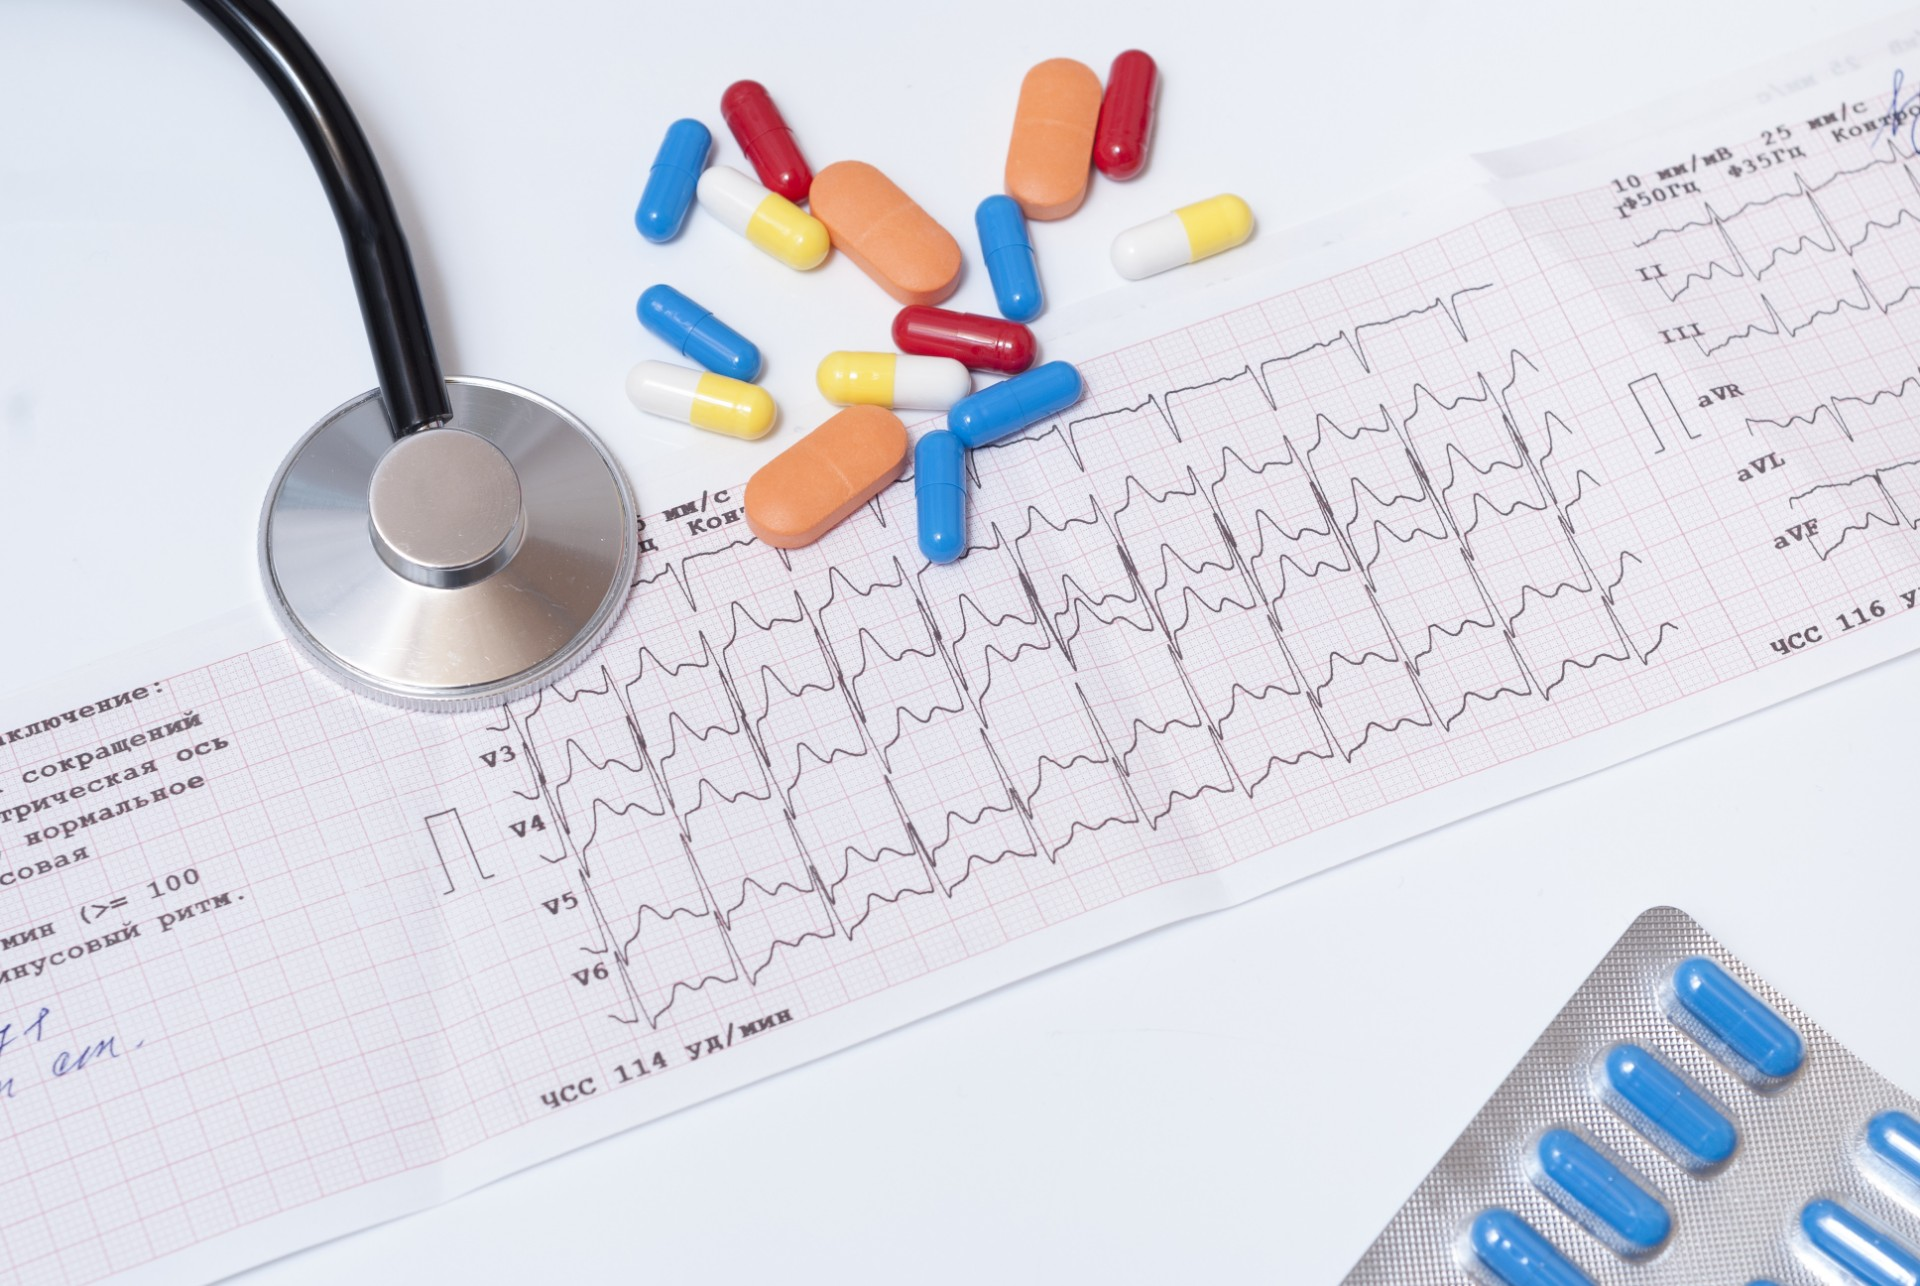 medical pills, stethoscope and electrocardiogram results on the table